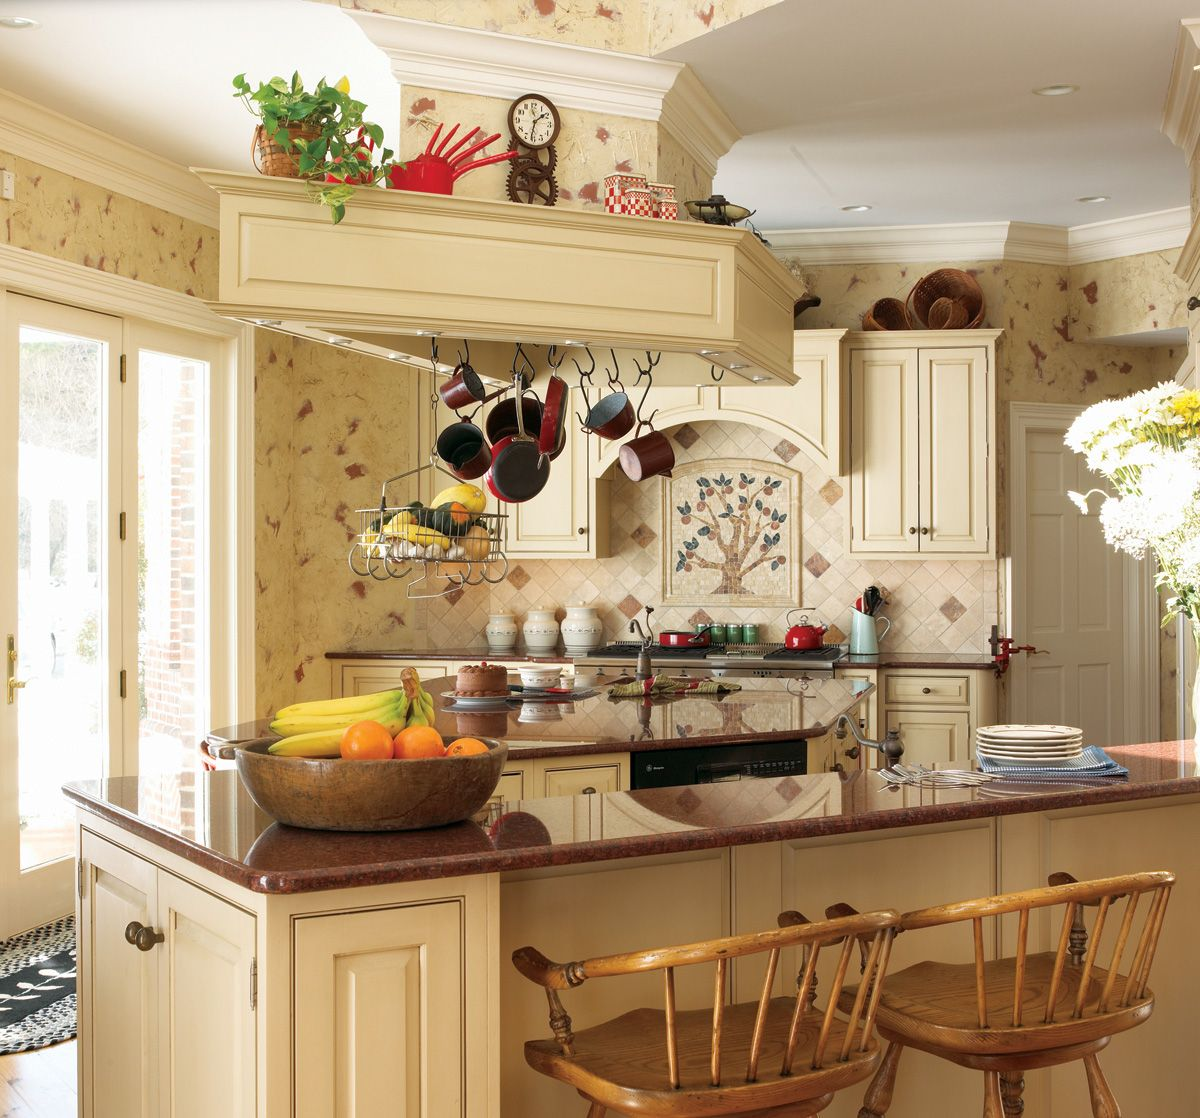 French country kitchens - This French Country Kitchen Features Soft And Pleasant Tones To Accentuate The Ample Natural Sunlight That